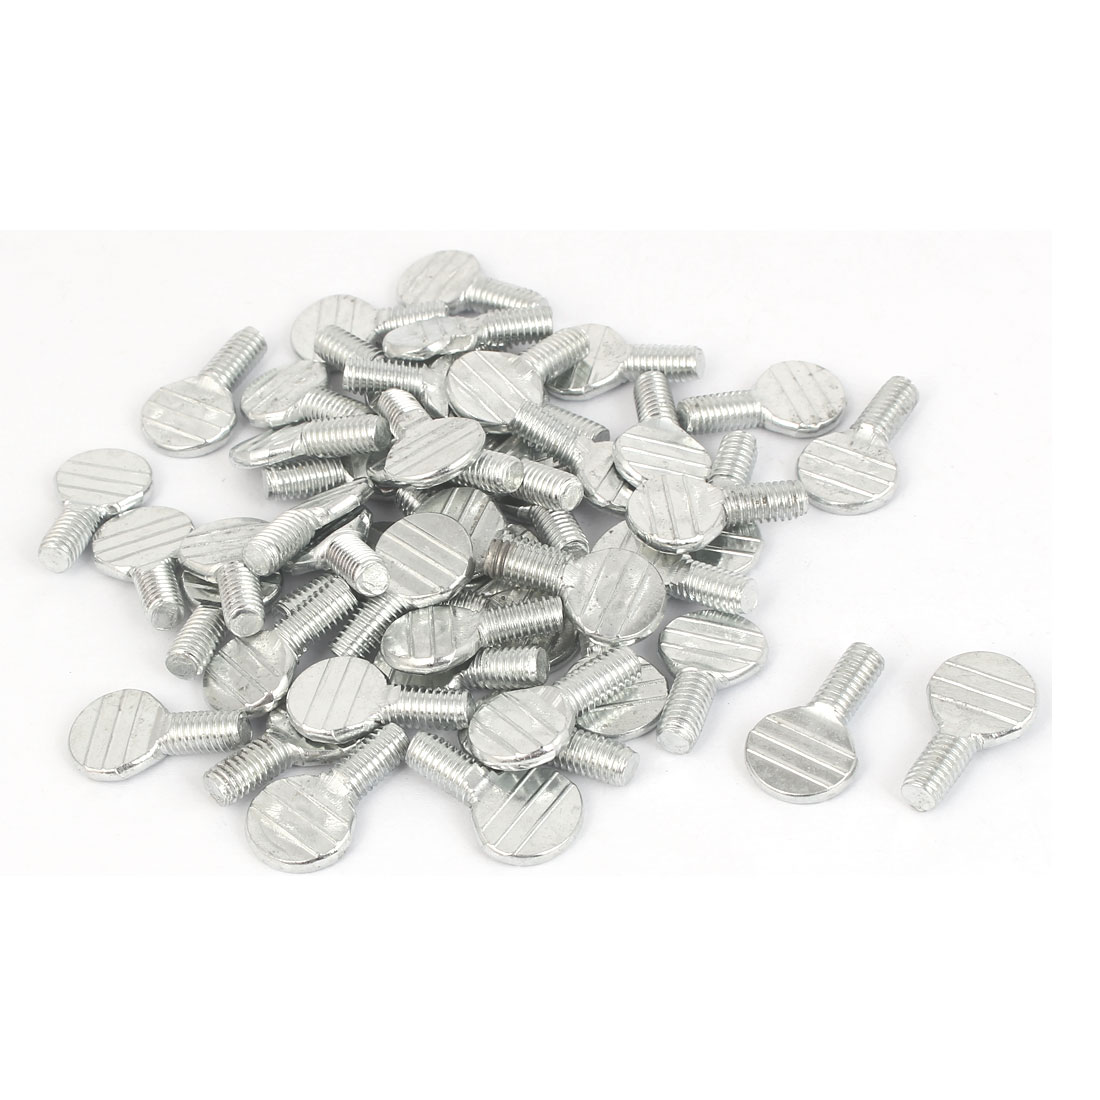 M6 x 12mm Machine Threaded Carbon Steel Racket Thumb Screws 50 Pcs